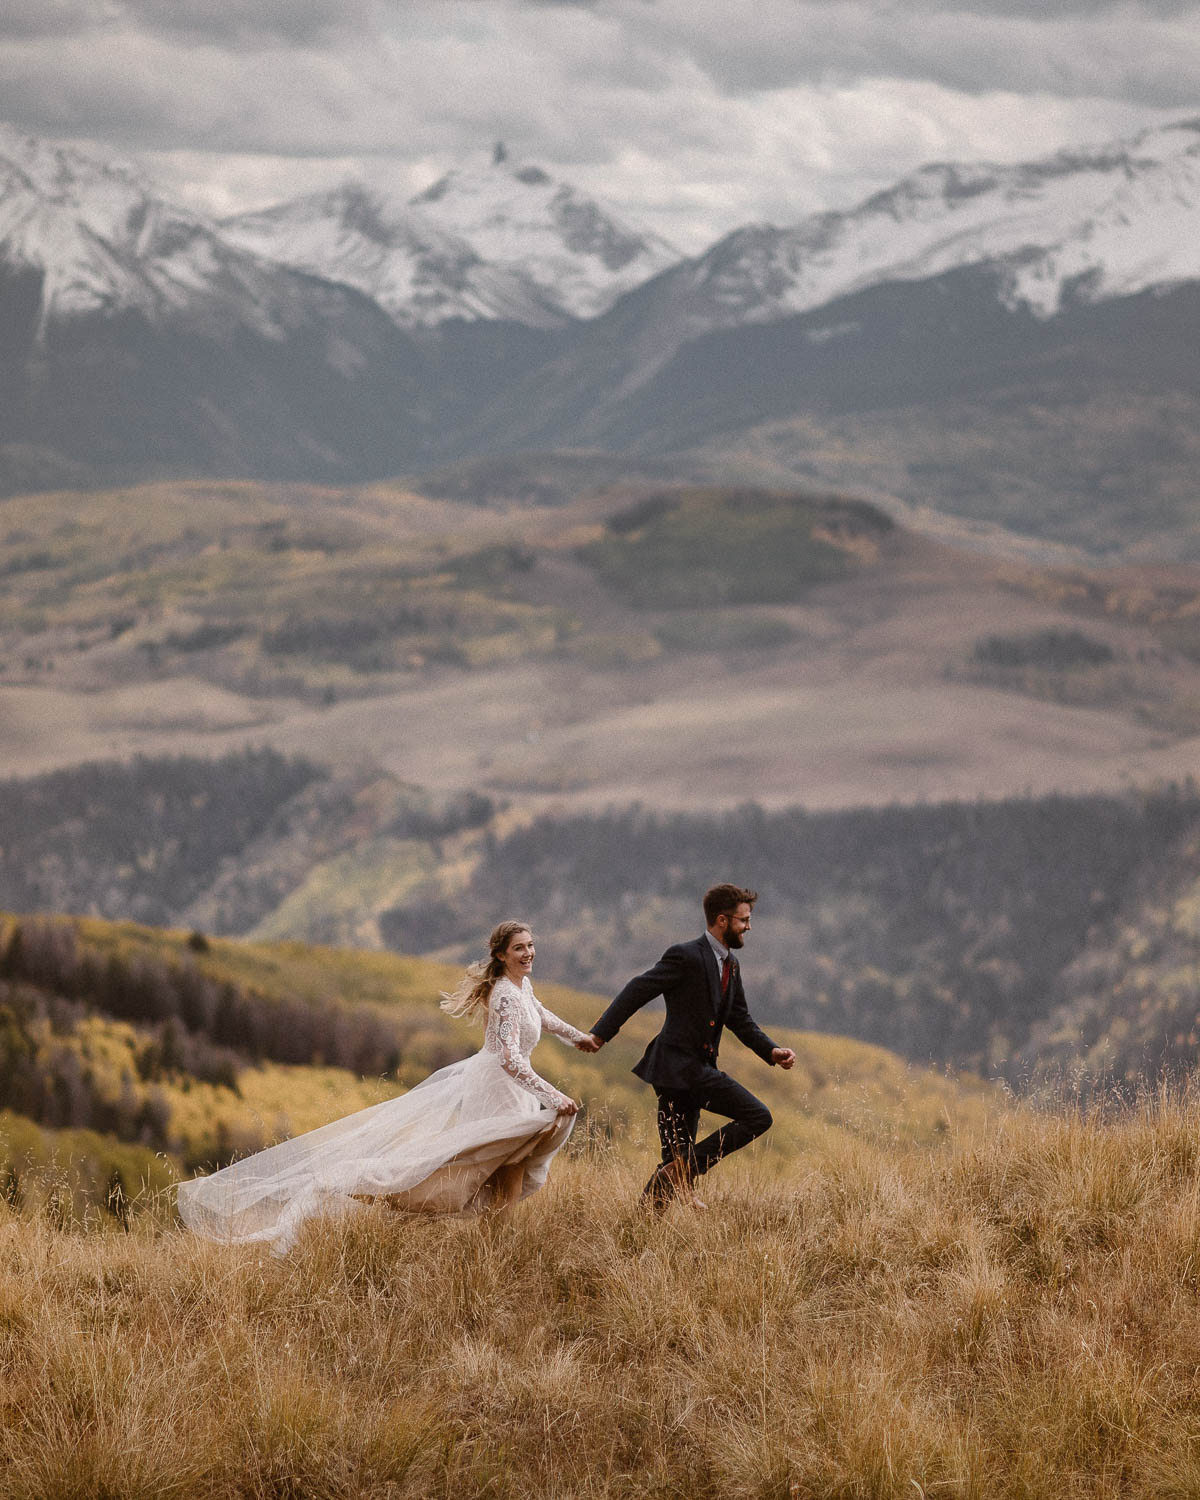 Colorado Elopements & Intimate Weddings - We define an elopement as an intimate wedding day experience that's focused on YOU two and can include up to 25 of your closest family or friends (if you'd like)—or just have a incredible day just by yourselves. We know Colorado like the back of our hand, and would love to help you find the perfect location to say your vows.